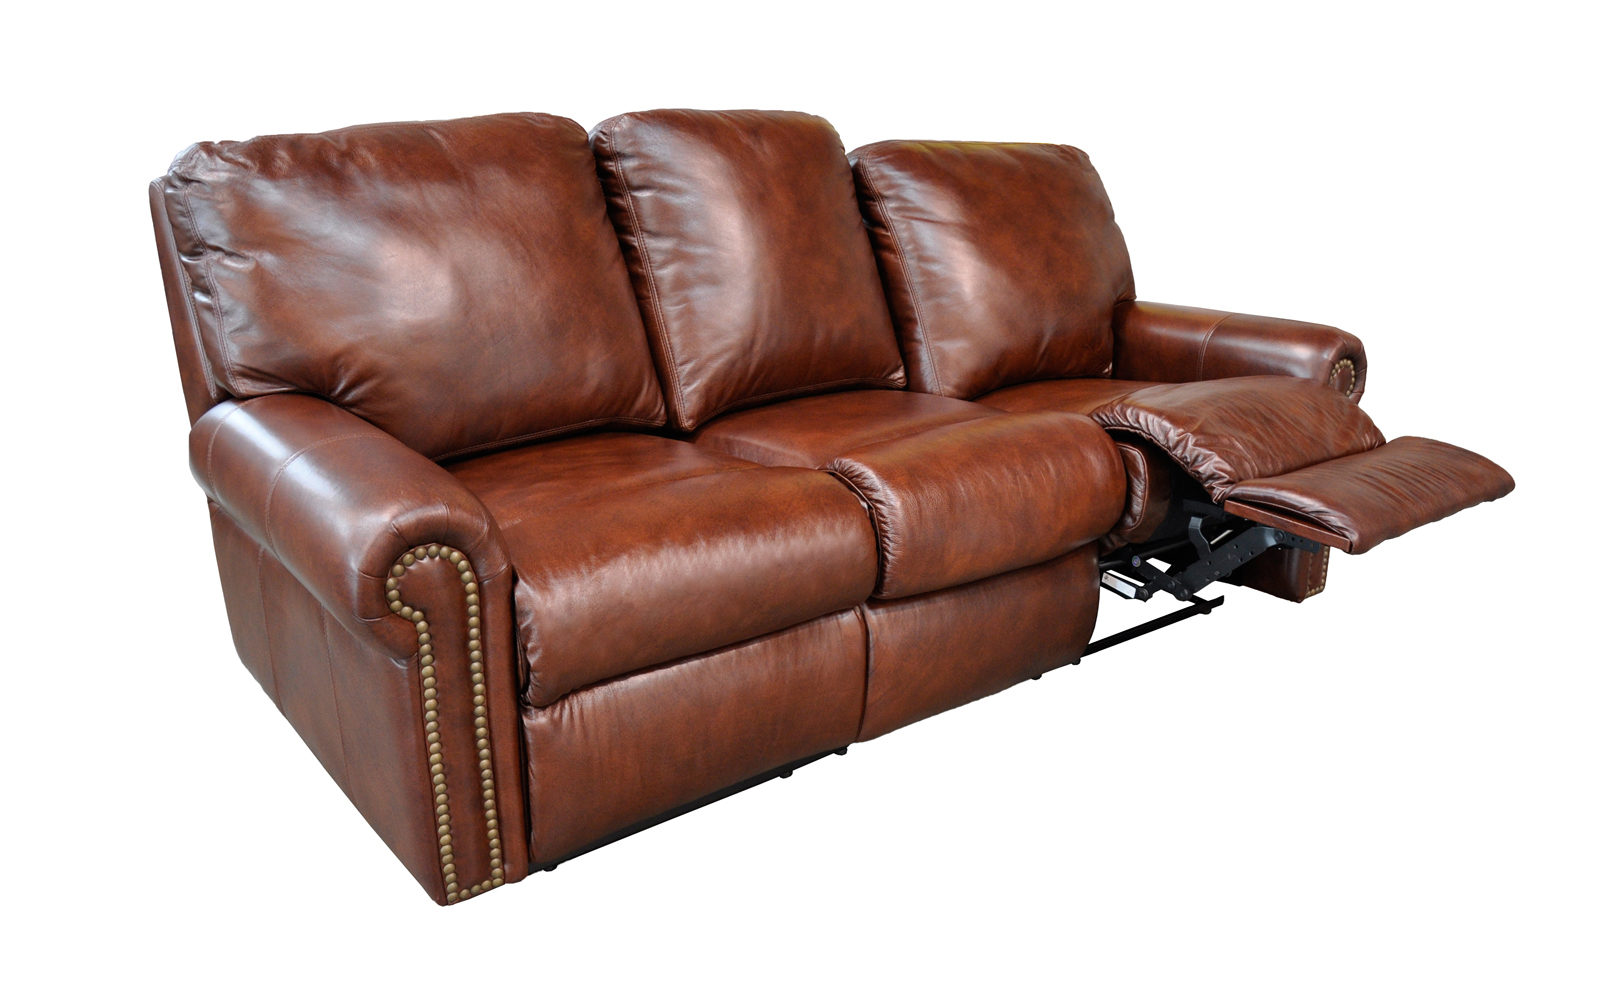 Fairmont Reclining Sofa Arizona Leather Interiors